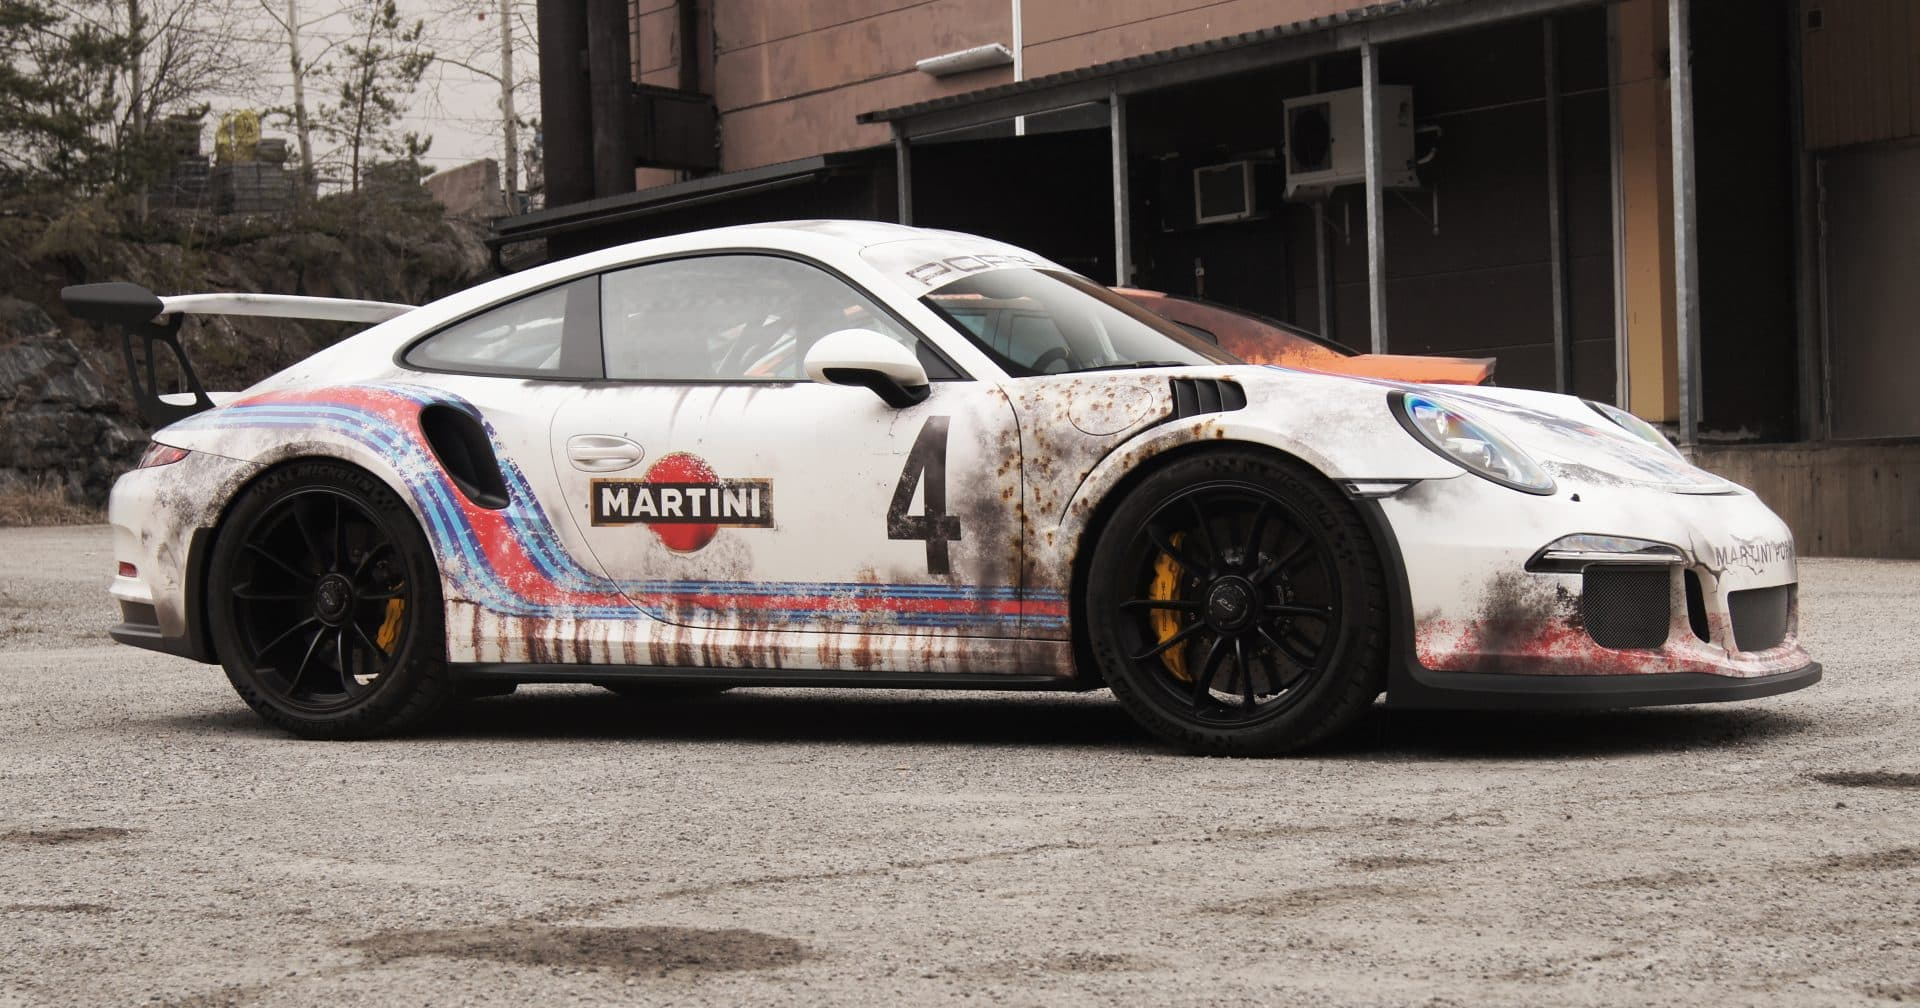 Used And Abused Martini Livery Porsche Gt3rs Skepple Inc